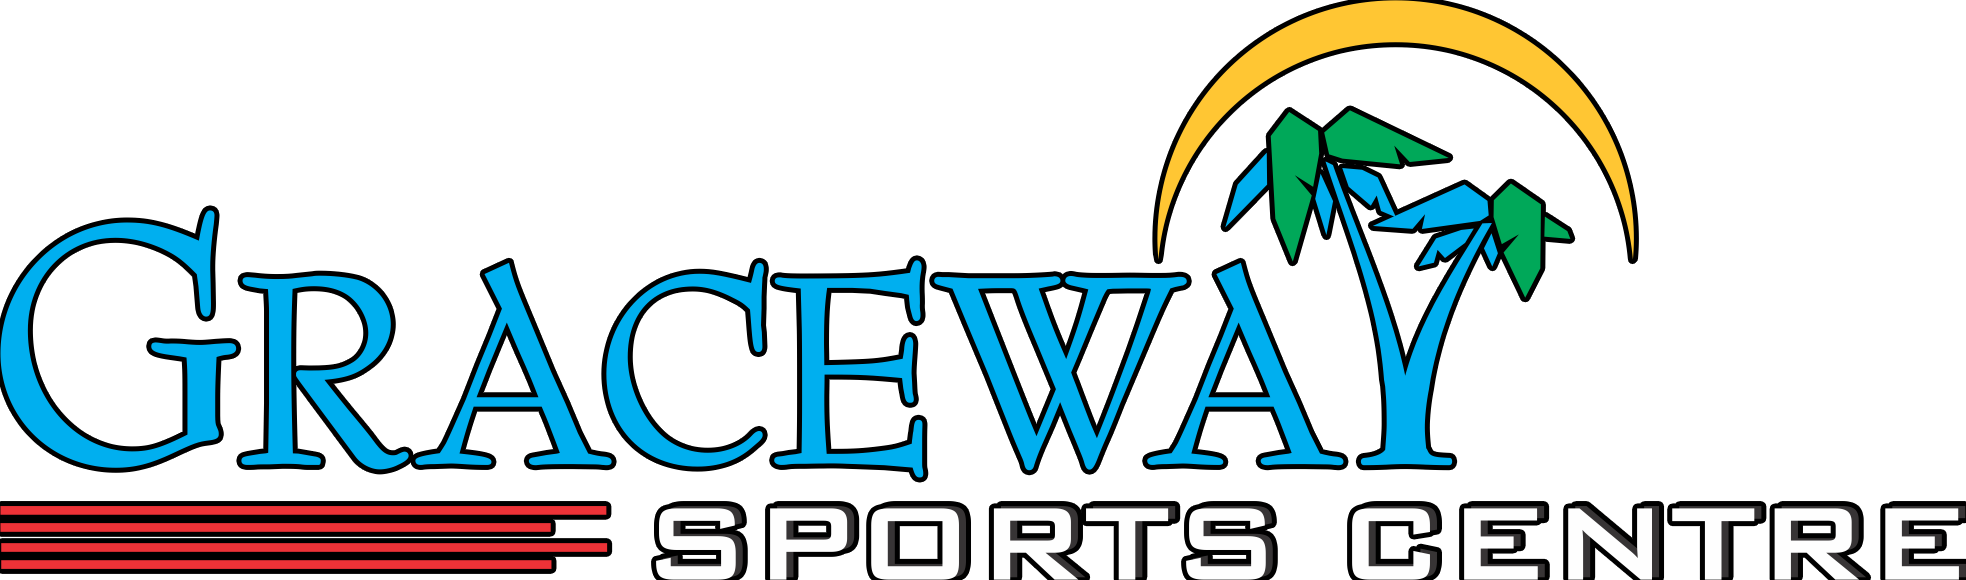 Beach 32 | Graceway Sports Center